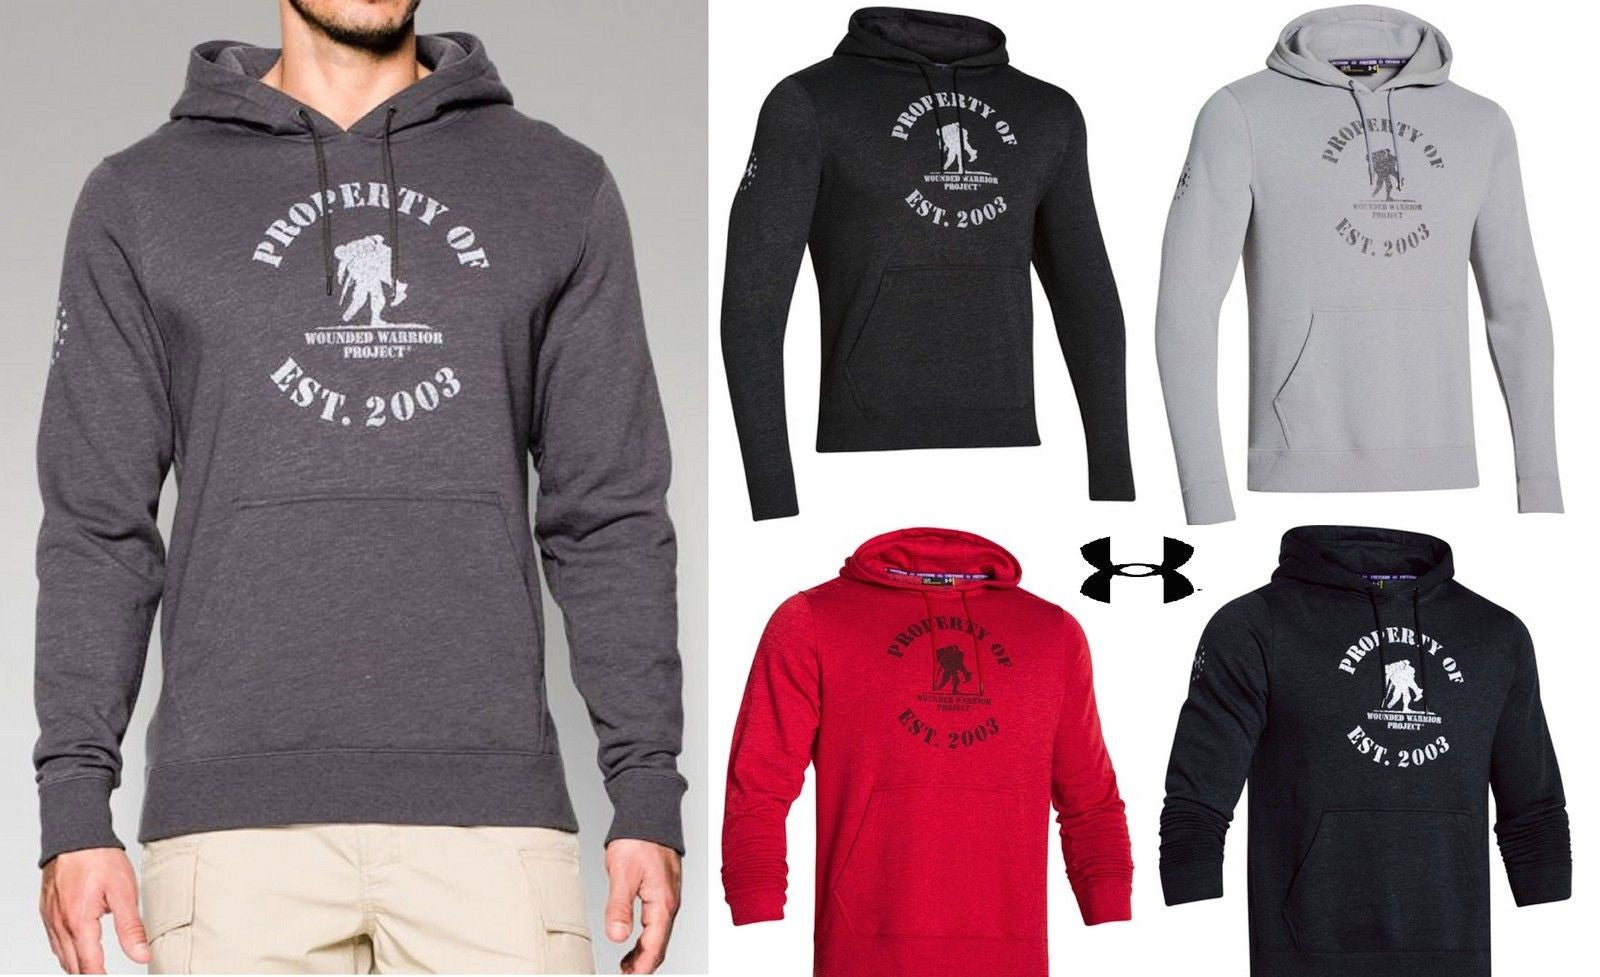 750b453af6c Under Armour Wounded Warrior Project Hooded Sweatshirt - Property Of WWP  Hoodie.